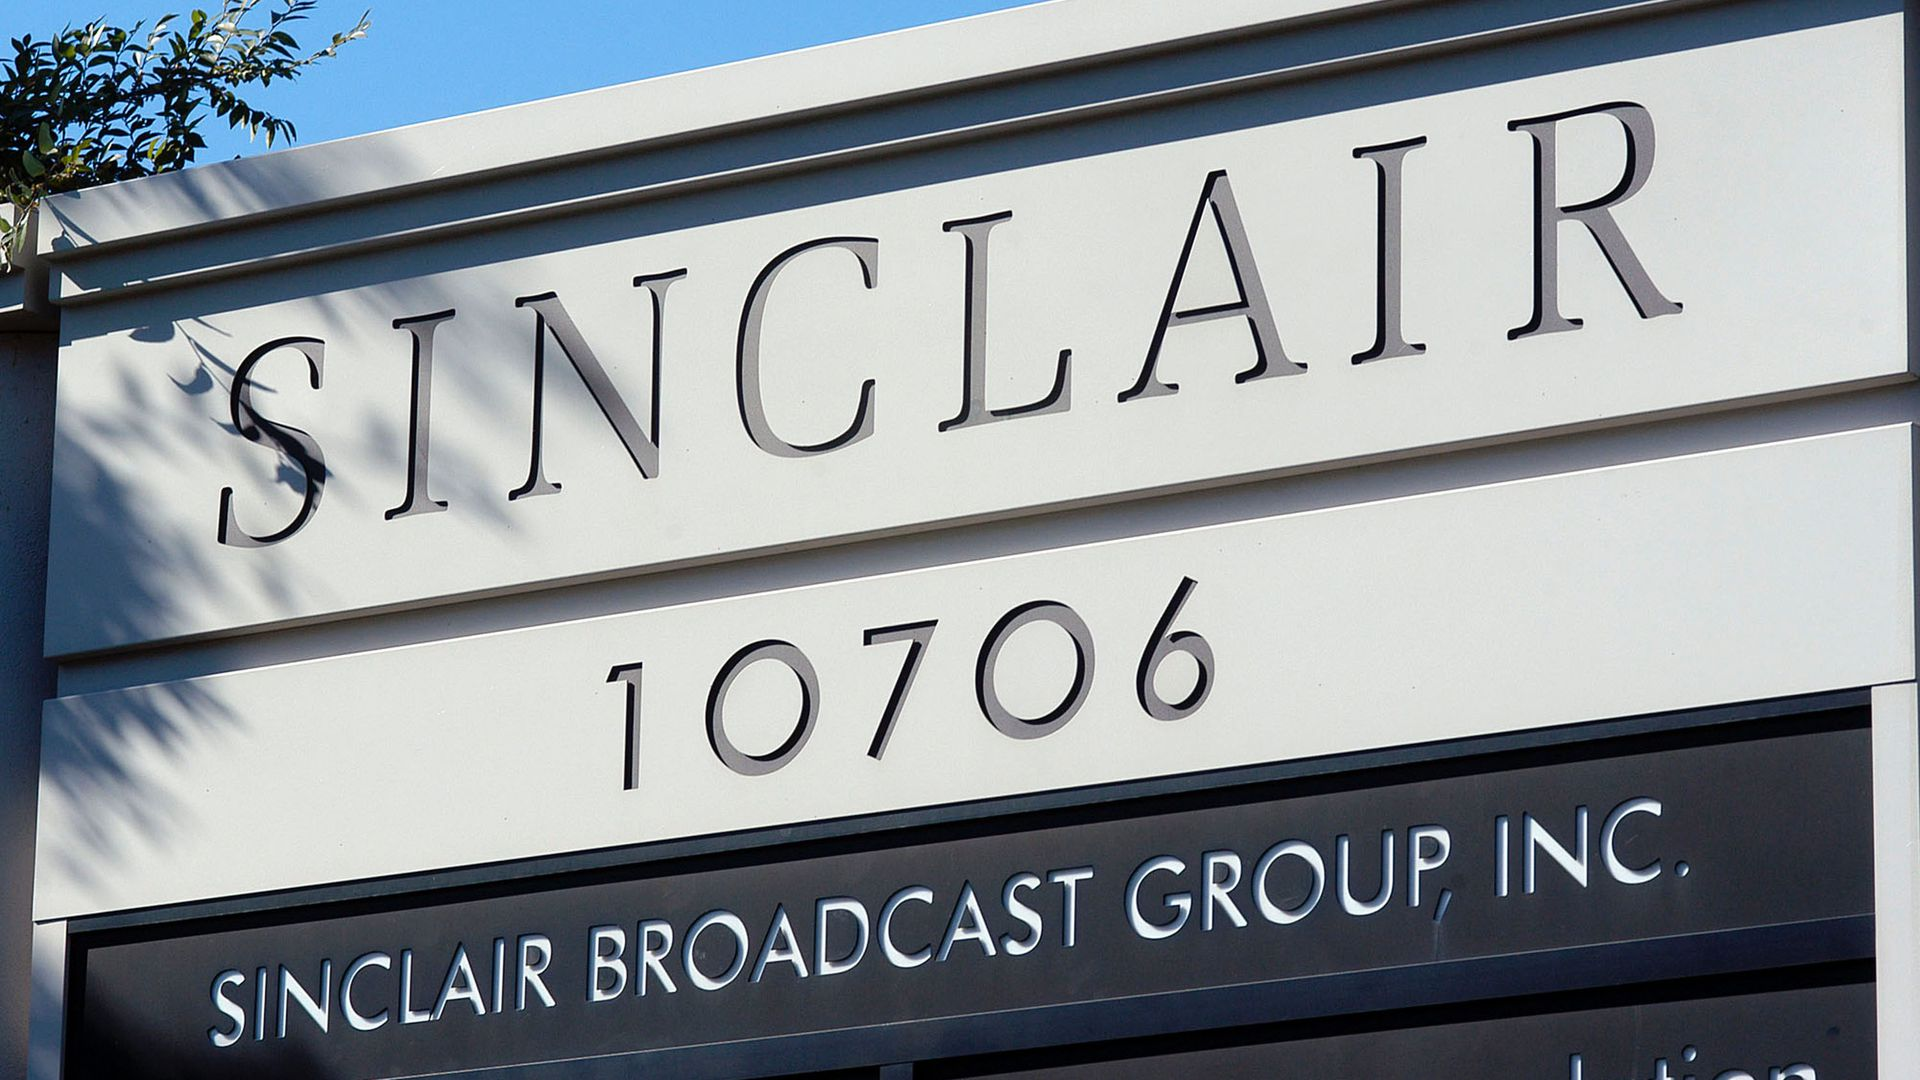 Sinclair broadcast group sign.